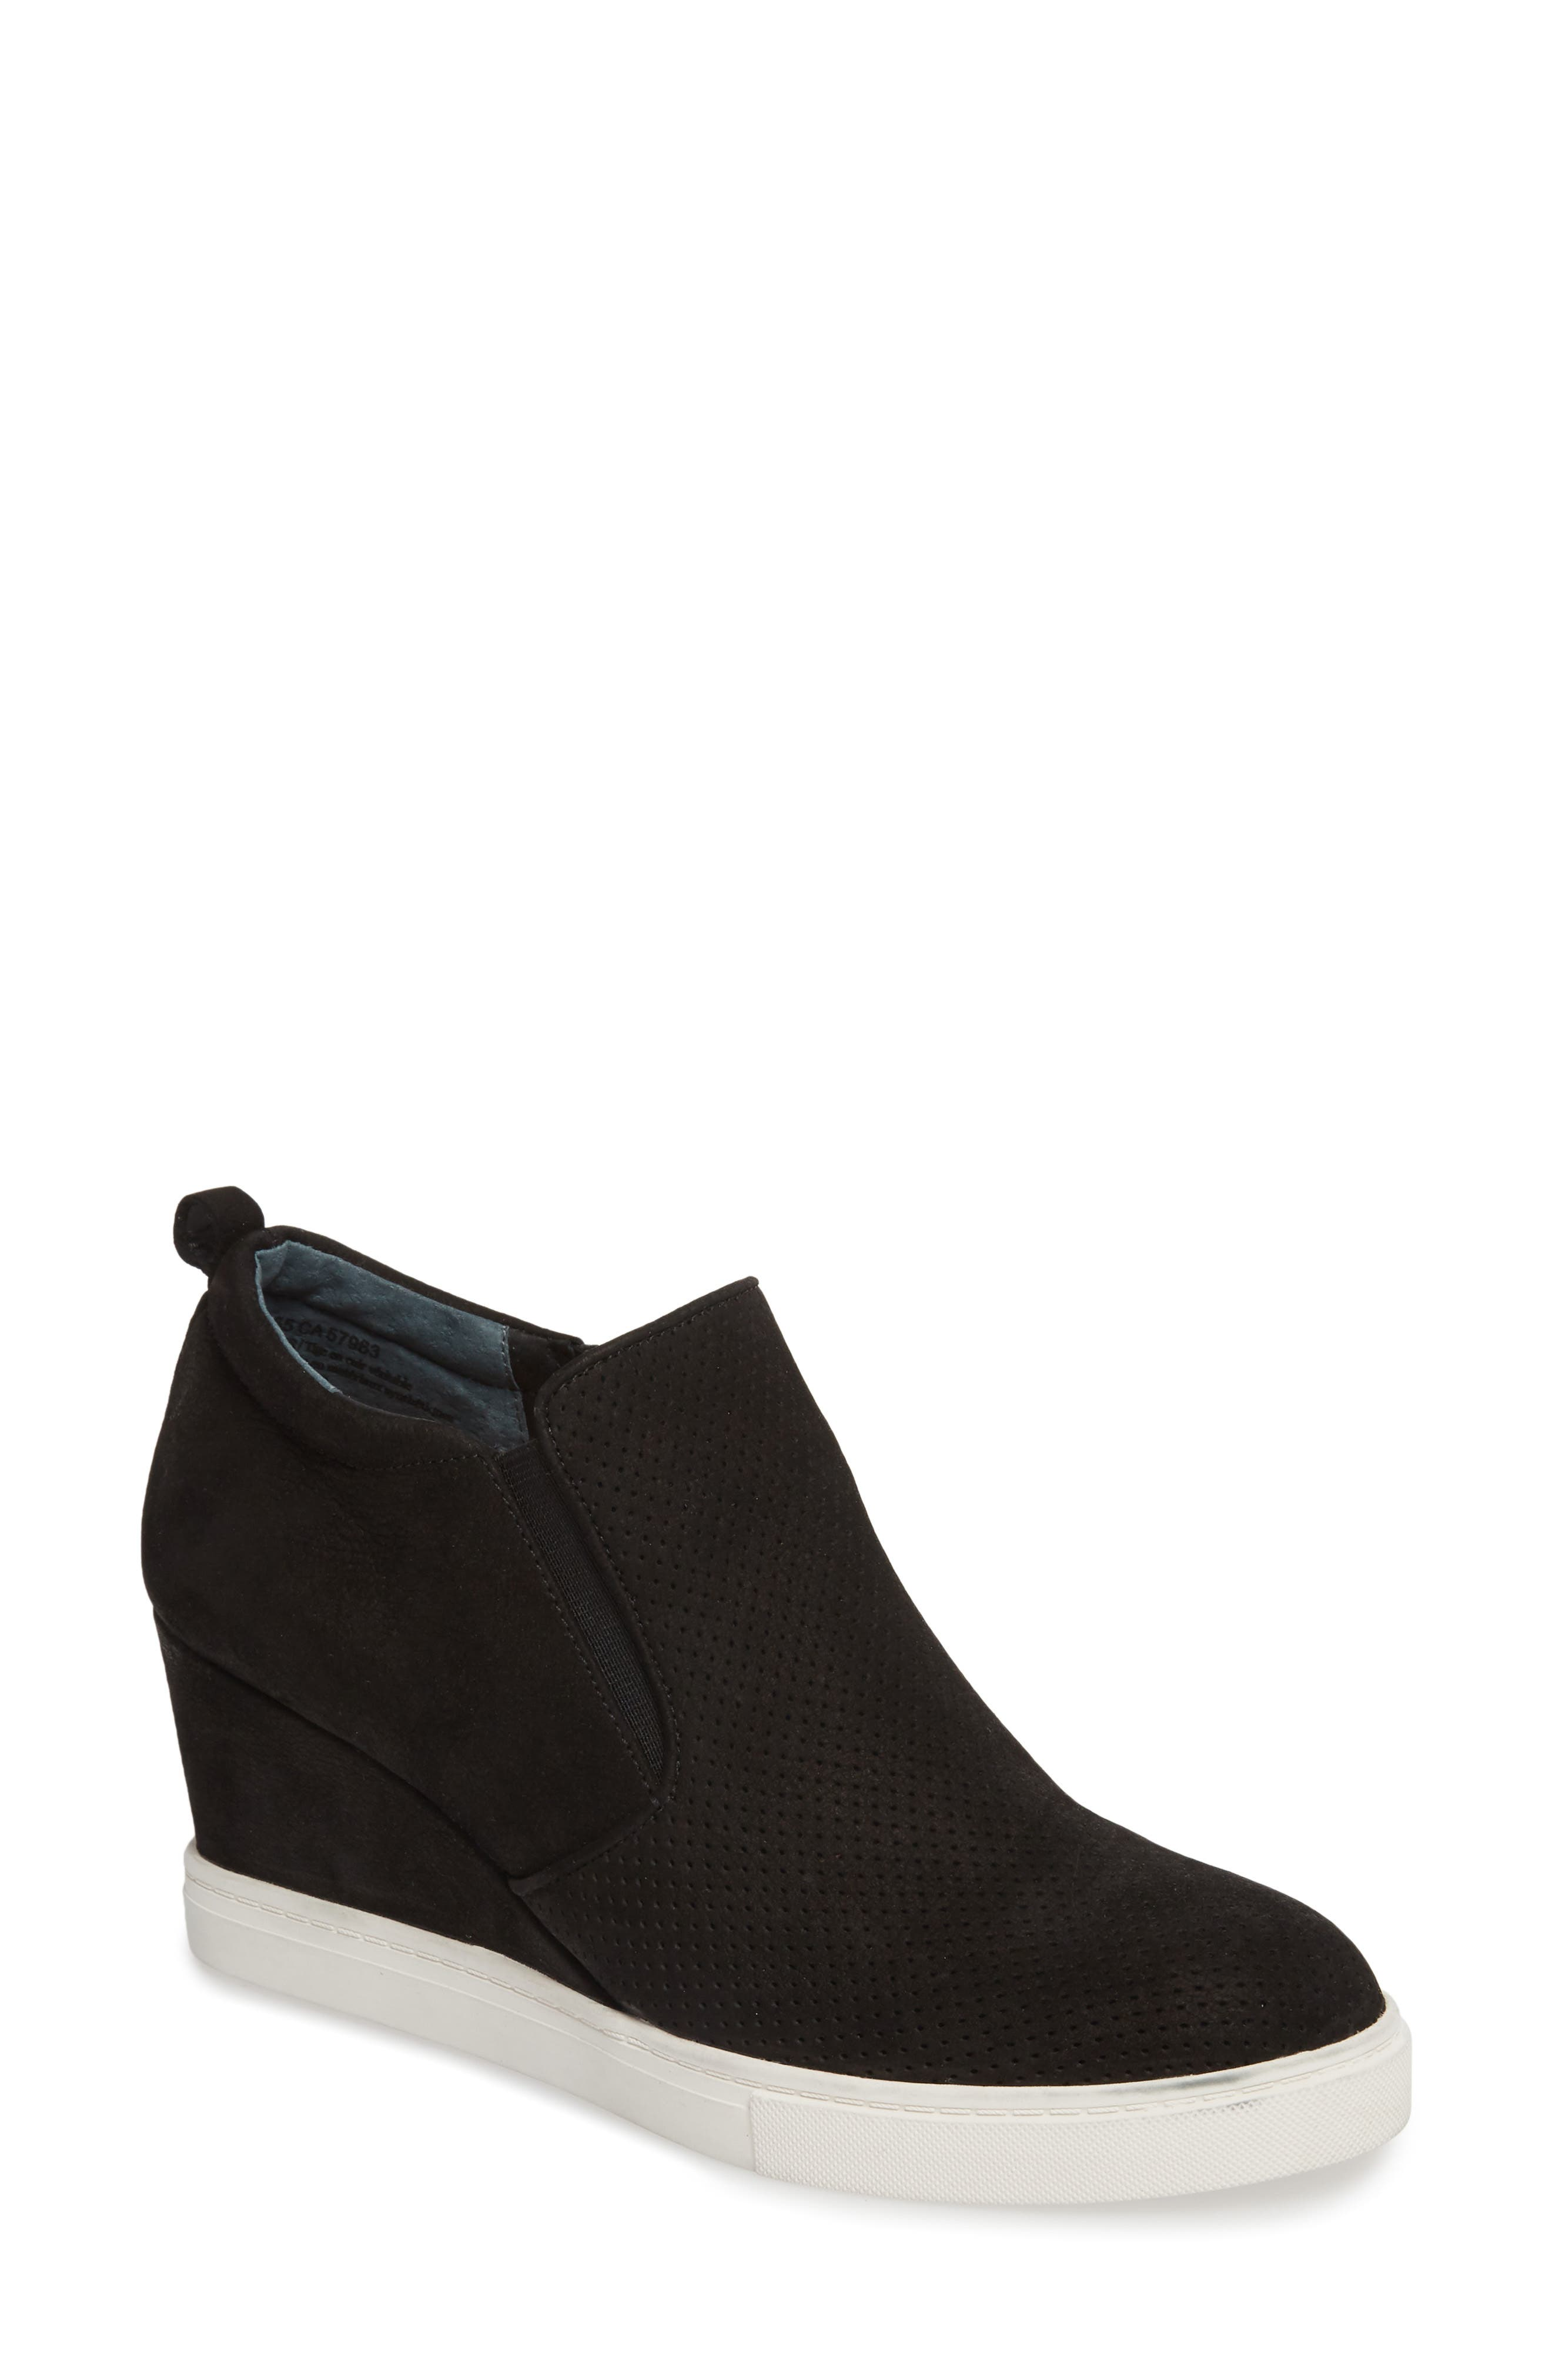 Aiden Wedge Sneaker,                         Main,                         color, BLACK PERFORATED LEATHER